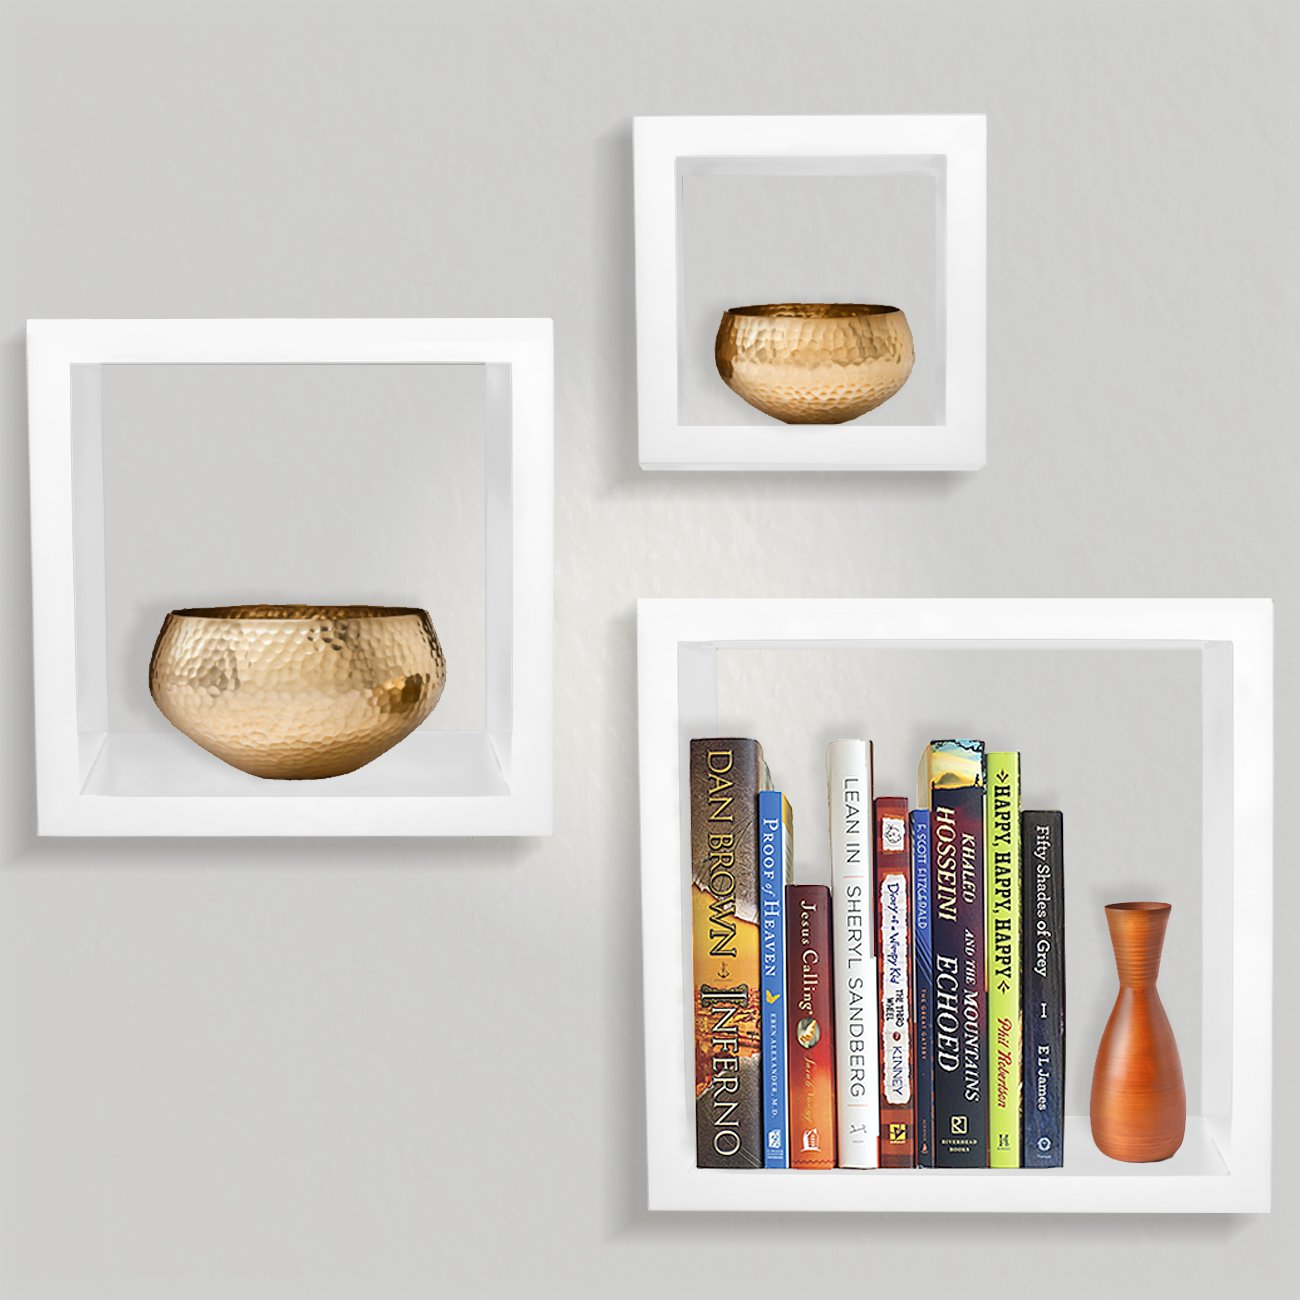 Sorbus Floating Shelves— Square Shaped Hanging Wall Shelves for Decoration - Features Shadow Square Frame Design for Photo Frames, Collectibles, Decorative items, and Much More (Set of 3, White)